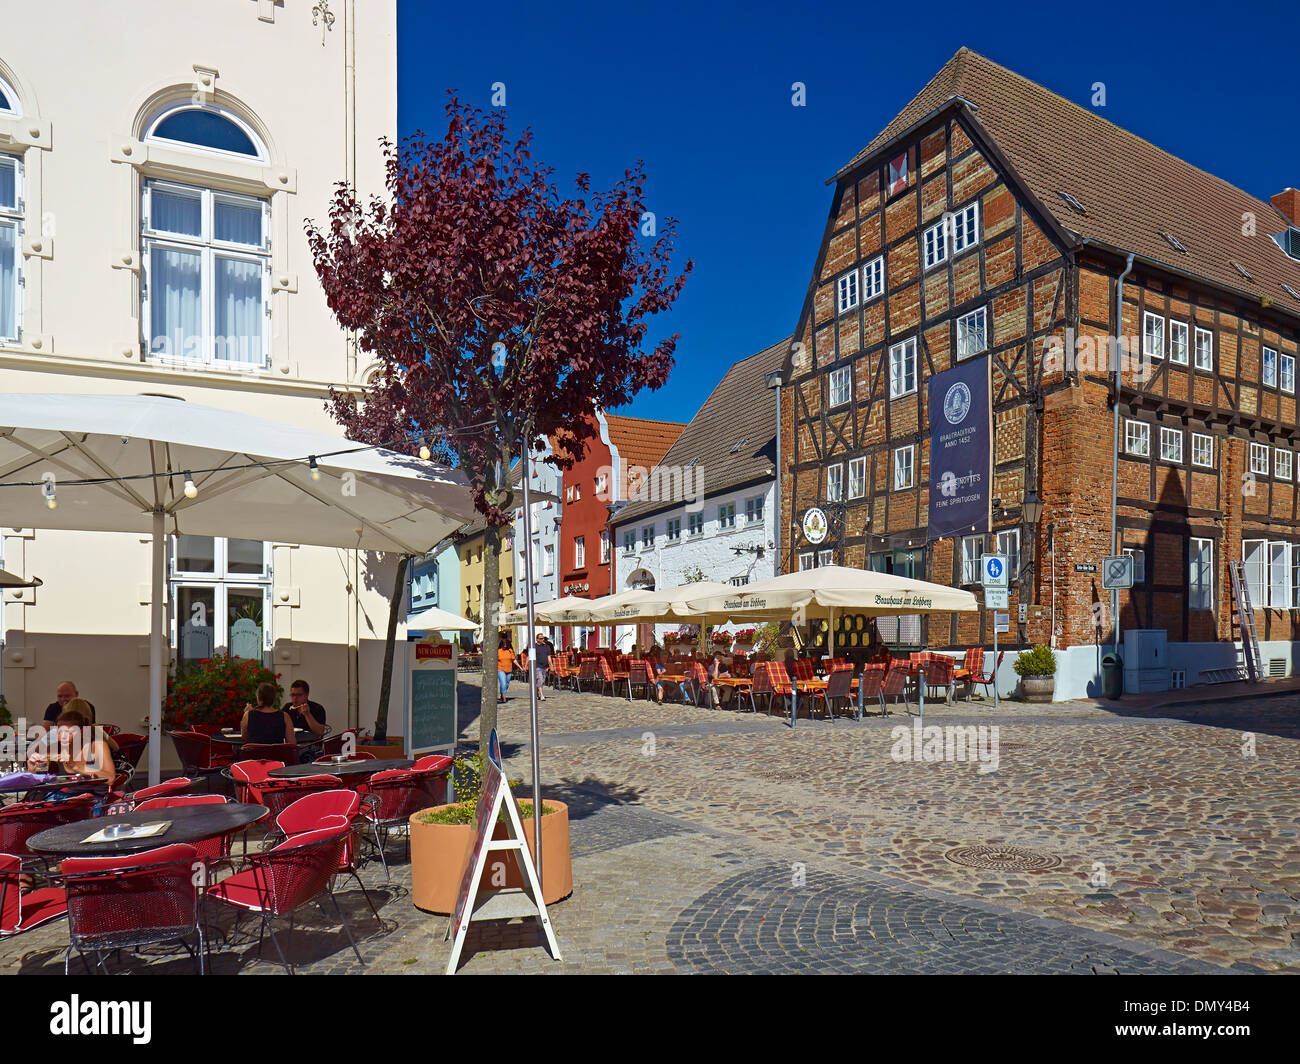 Brauhaus at the Lohberg, Old Harbour, Hanseatic city of Wismar, Mecklenburg-Vorpommern, Germany - Stock Image